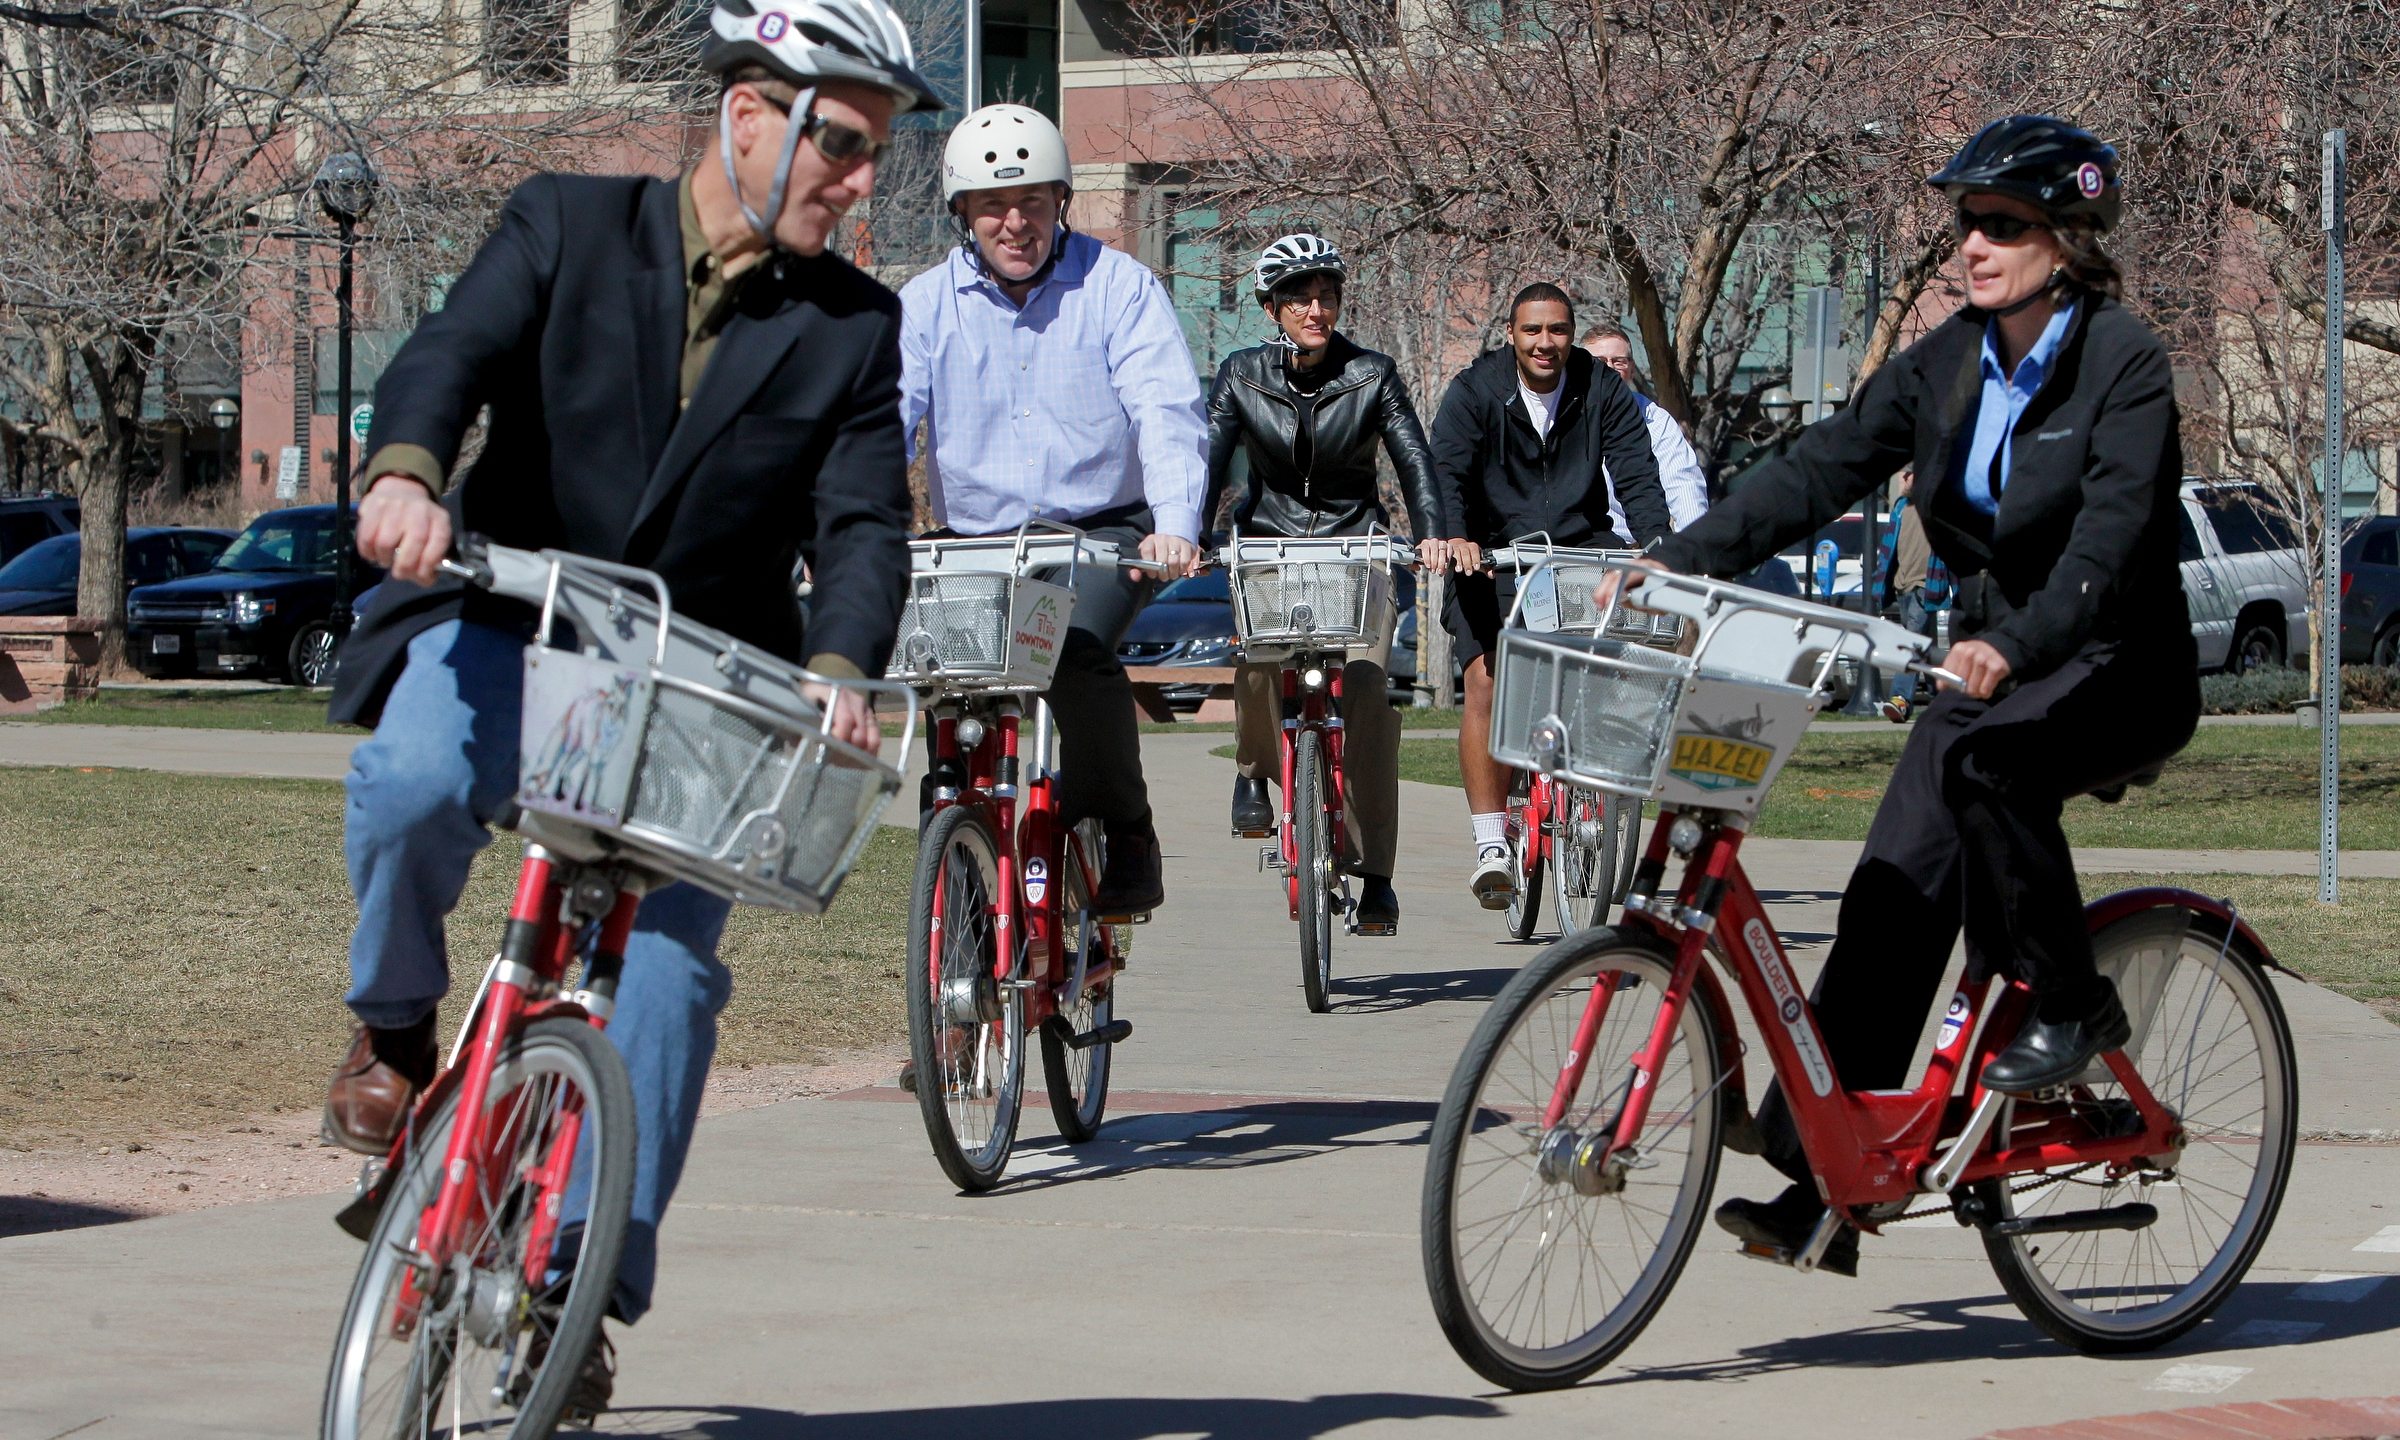 James Waddell, executive director, Boulder B-cycle announce expansion plans for Boulder B-cycle in 2014, including increased focus on providing greater access to college students at the Boulder B-cycle Municipal Building Station in Boulder, CO., Wednesday, March 19, 2014. (Photo by Barry Gutierrez)